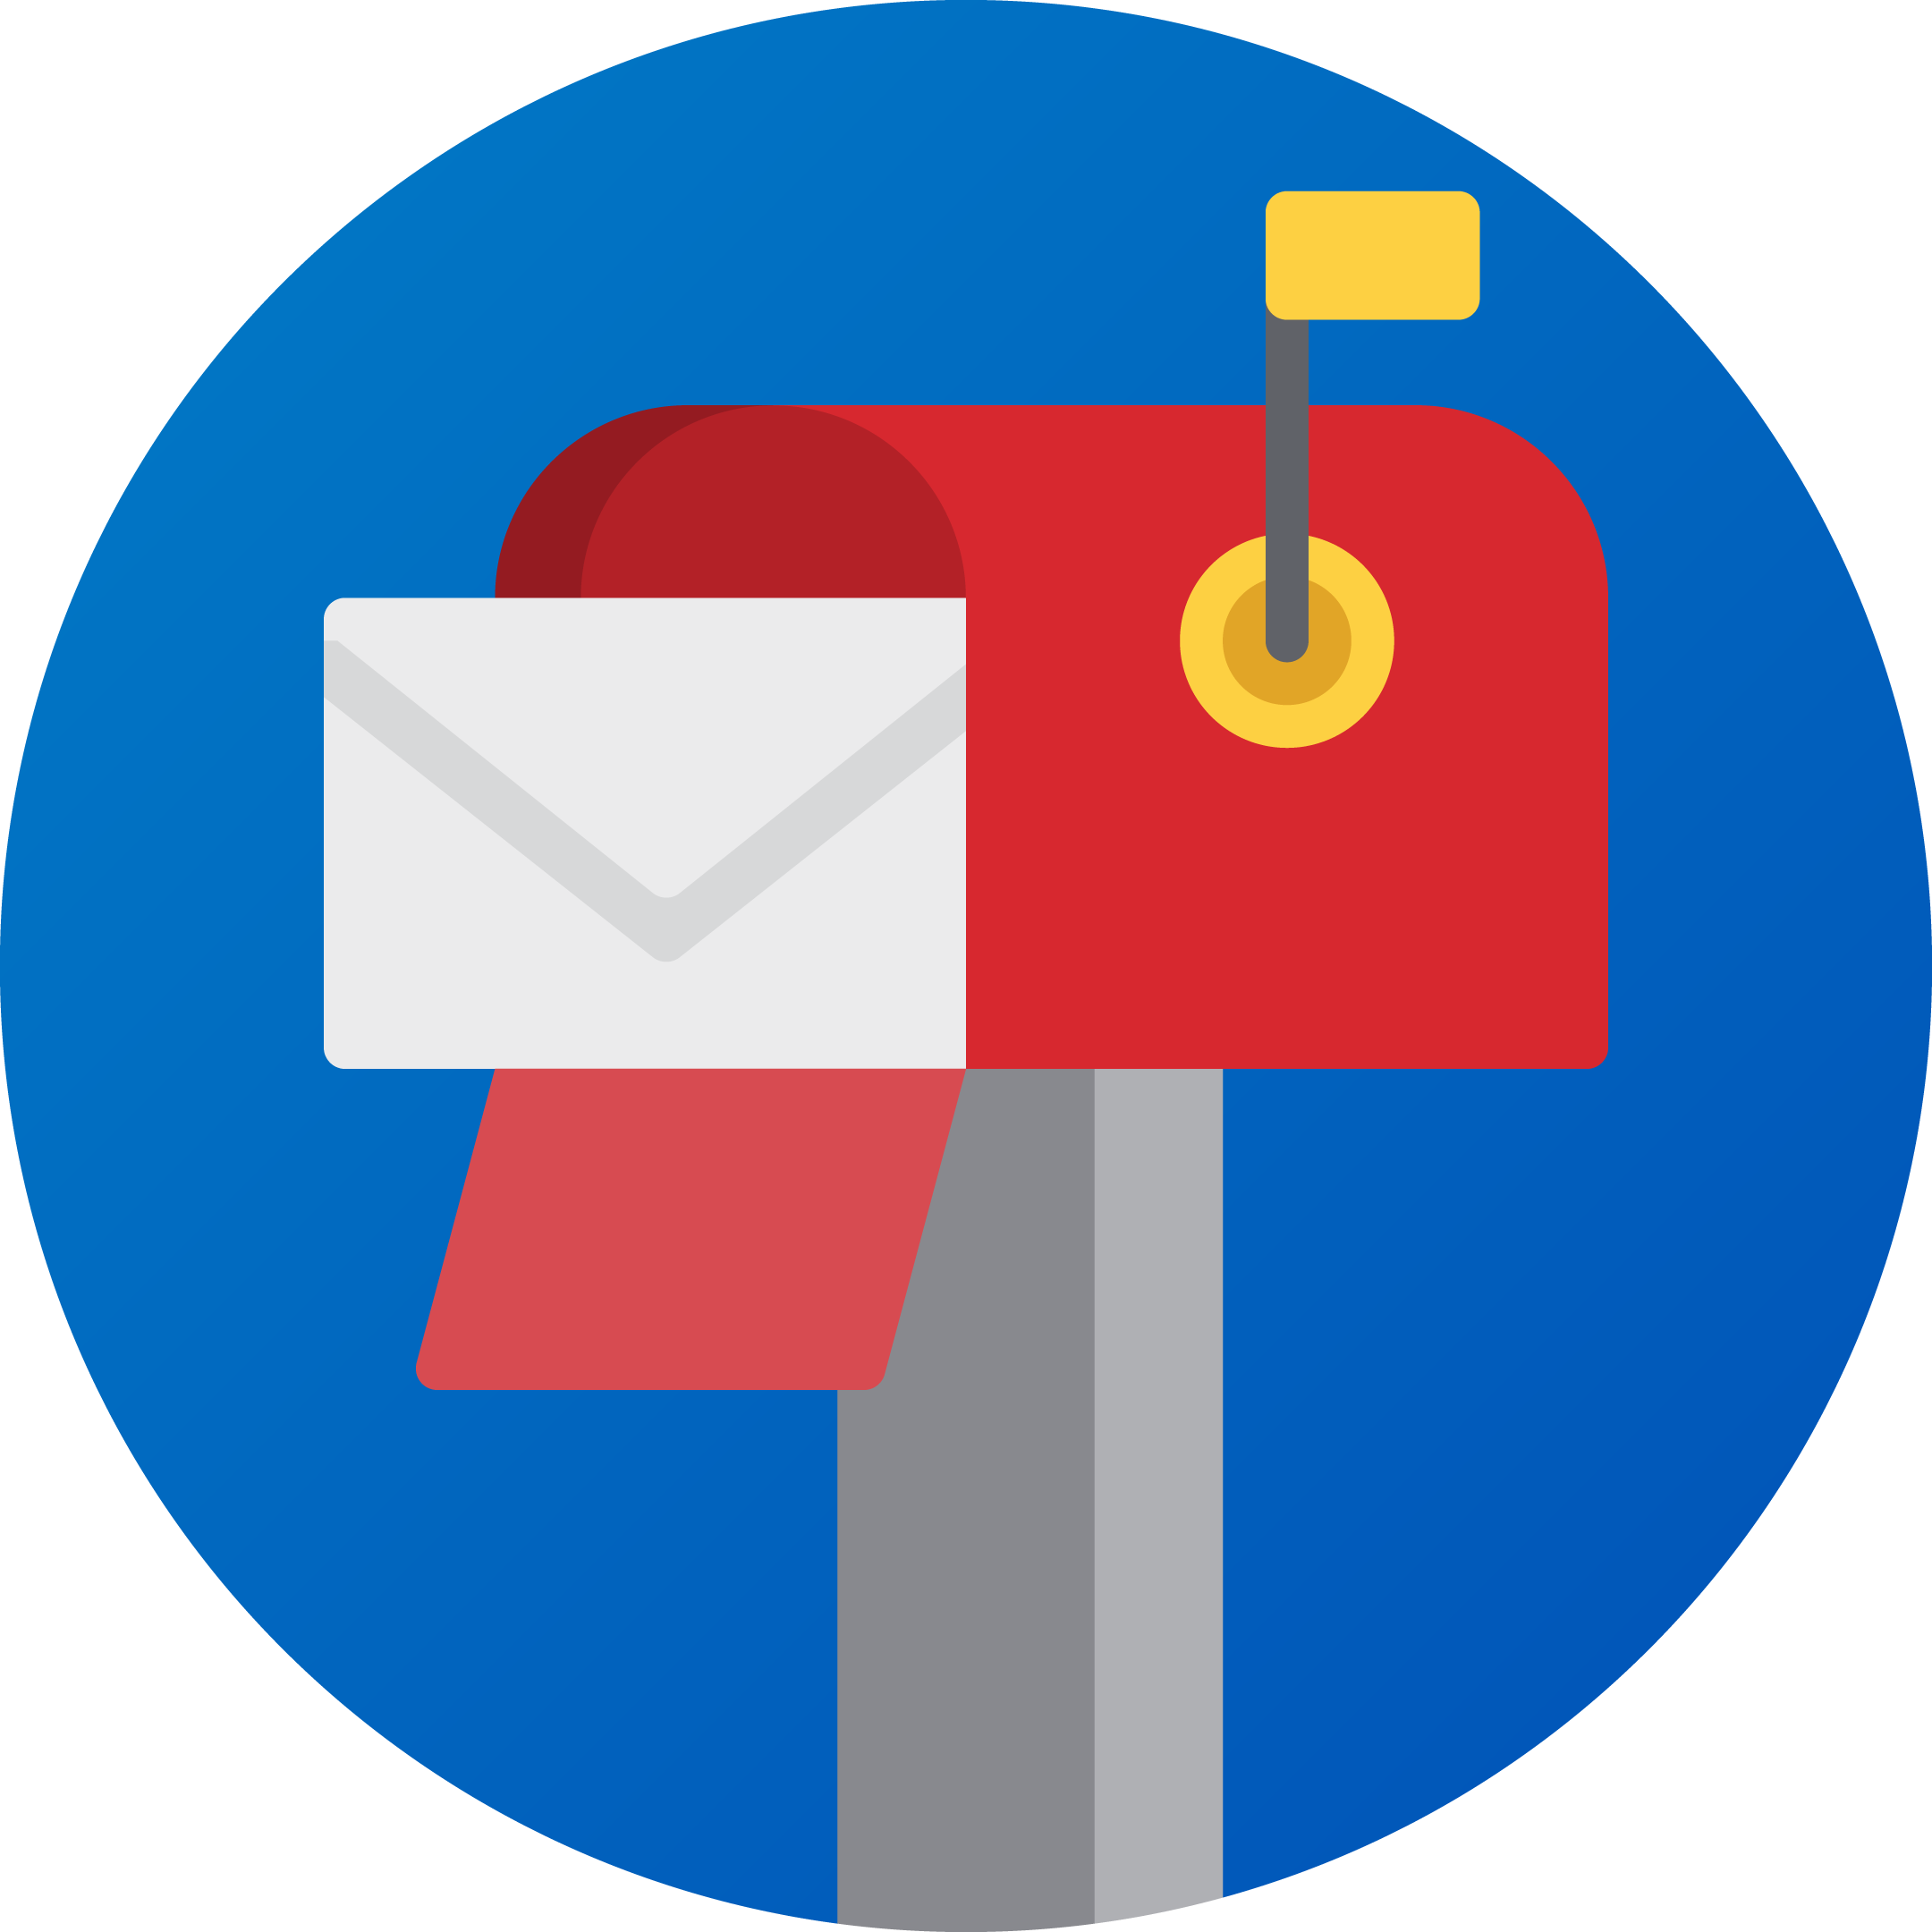 Icon of a red mailbox inside of a blue circle